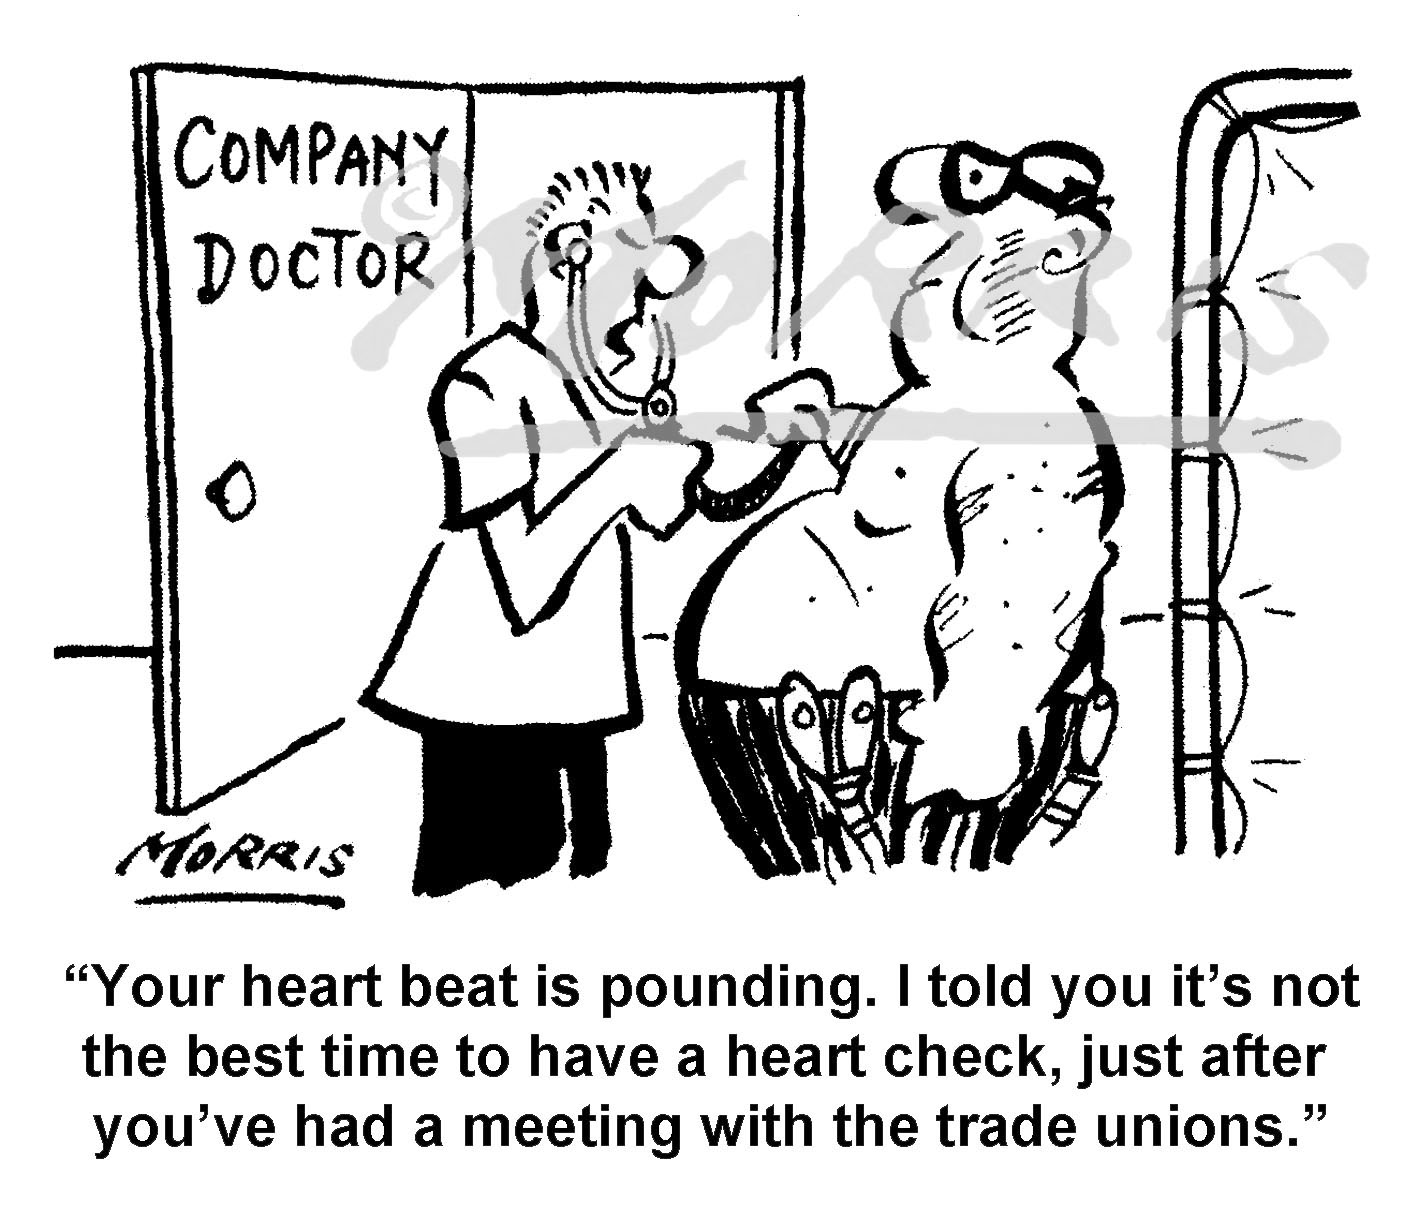 Company doctor heart check – Ref: 8018bw